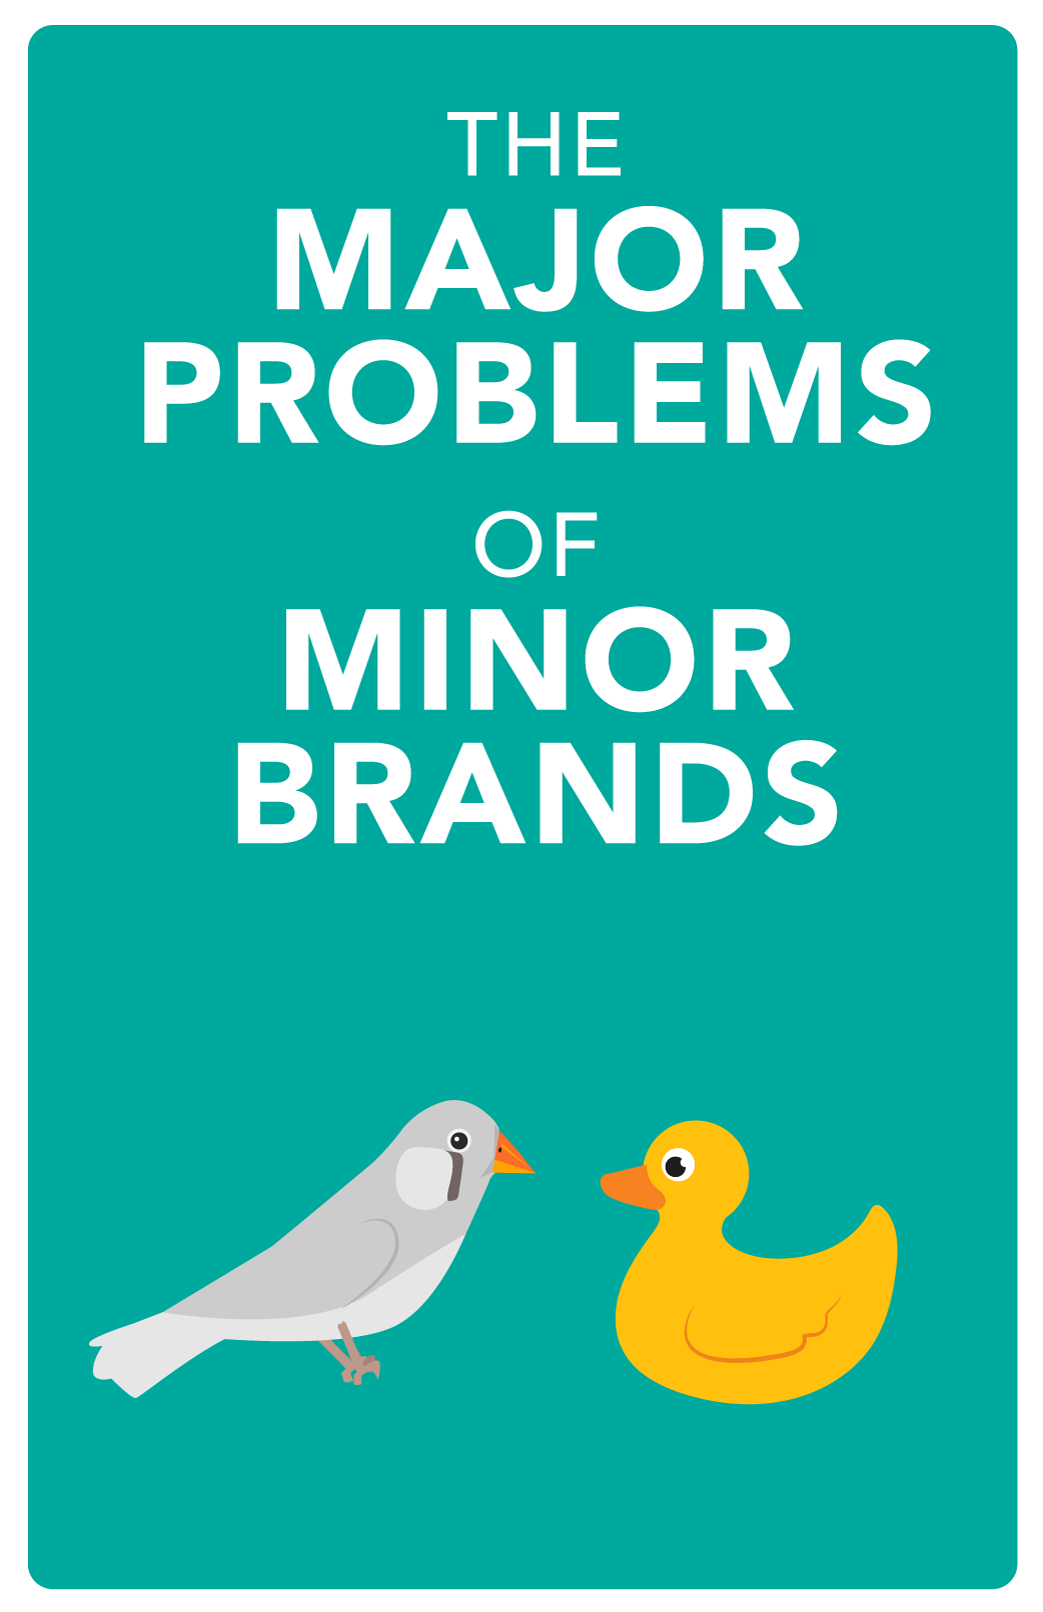 The Major Problem of Minor Brands